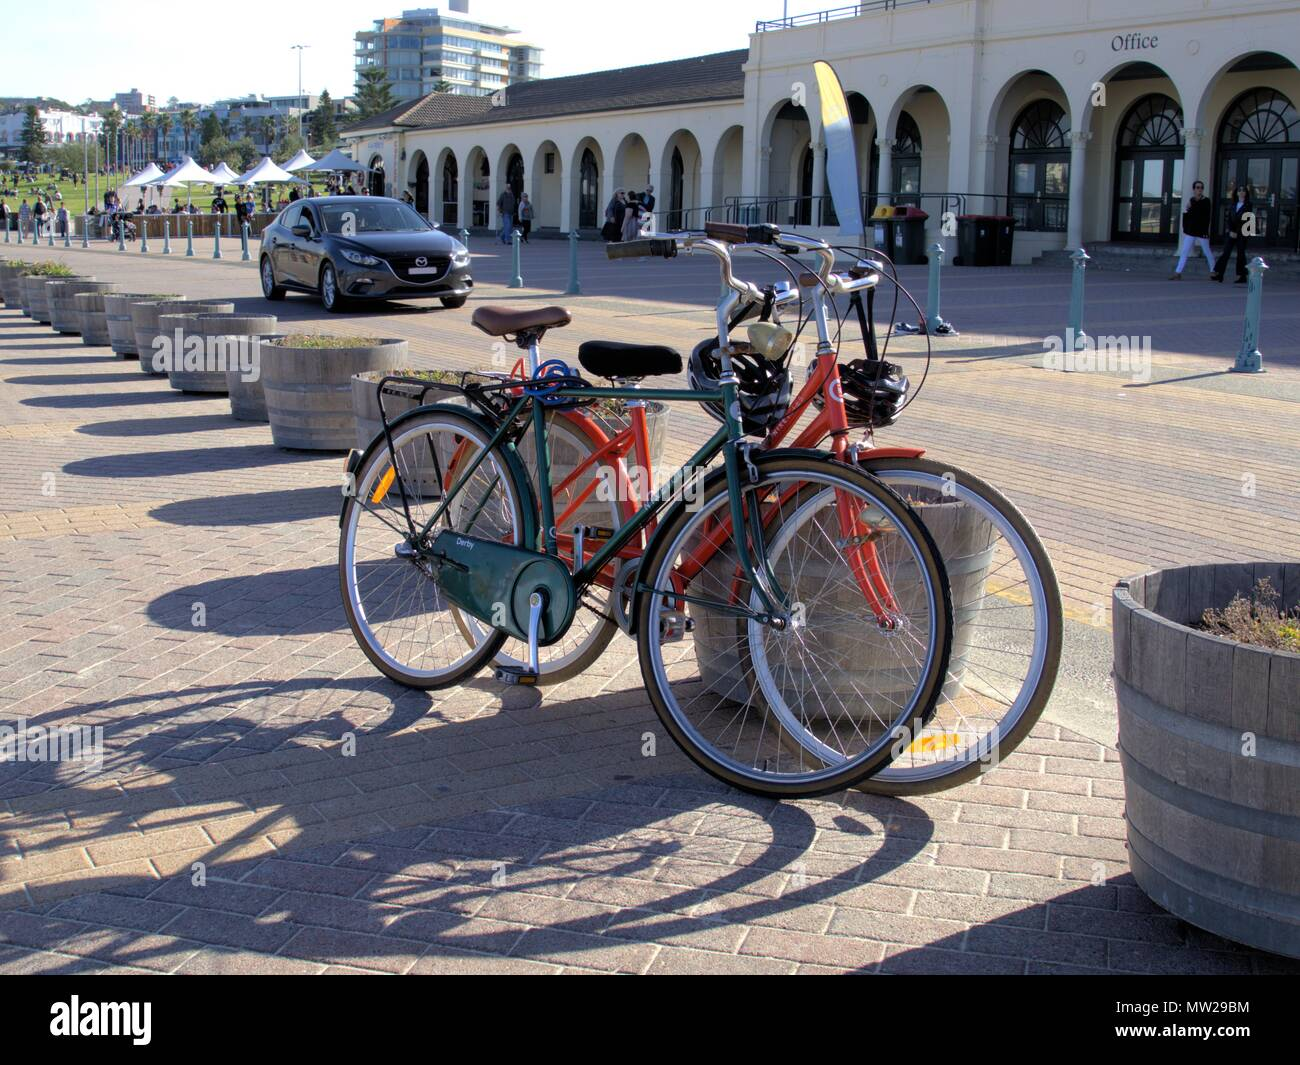 Bicycles parked by the street called Queen Elizabeth Dr at Bondi beach in Sydney, Australia. Moving car, people and front of Bondi Pavilion. - Stock Image